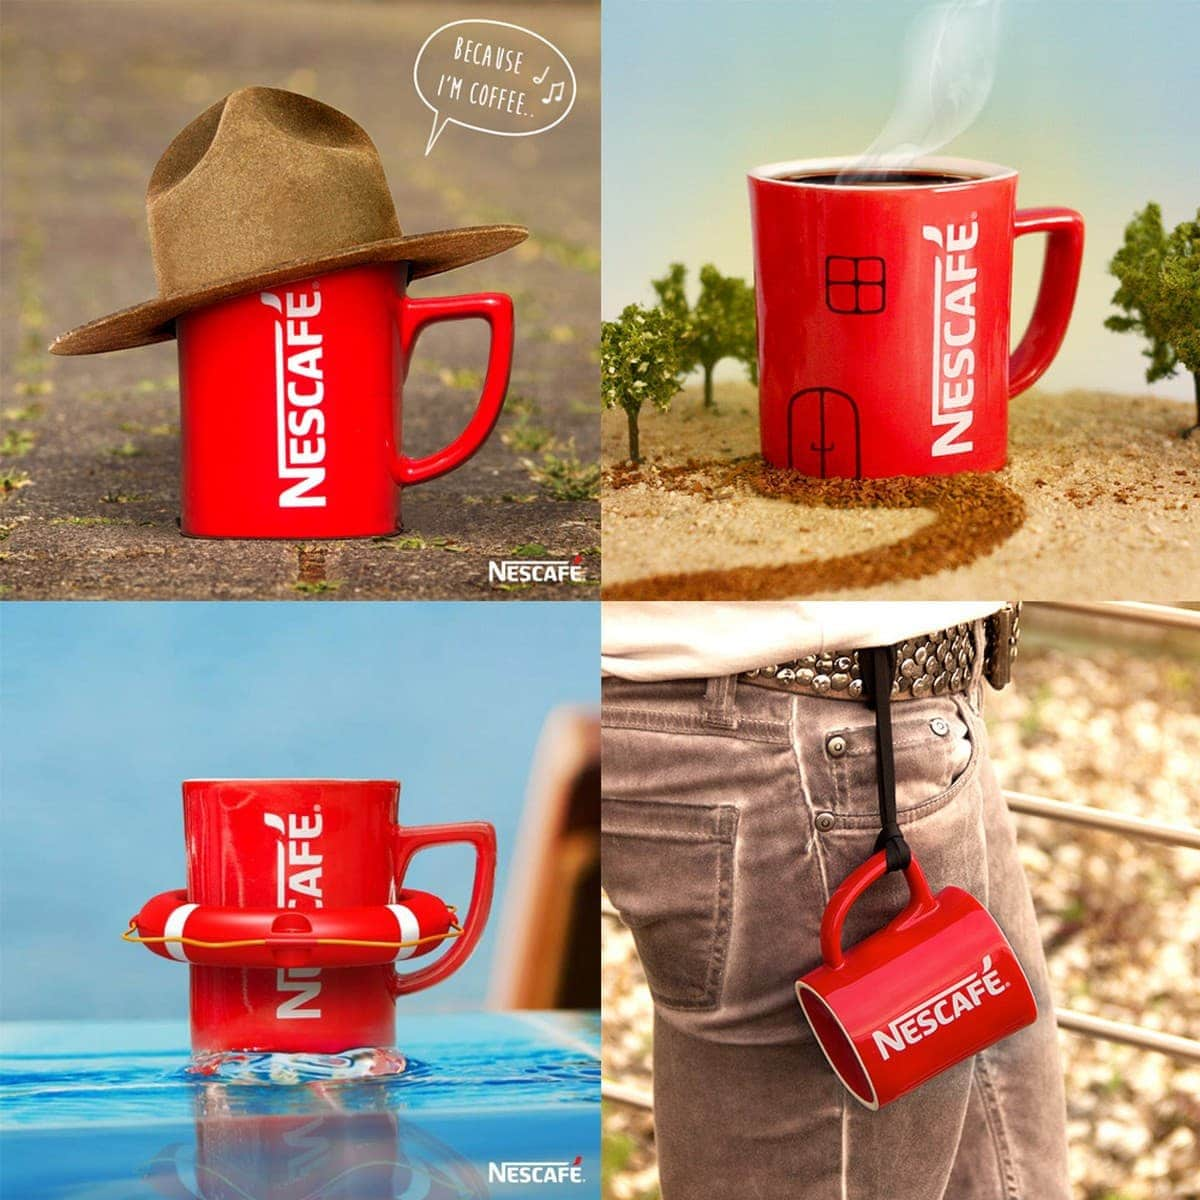 Marketing Strategy of Nescafe - 3